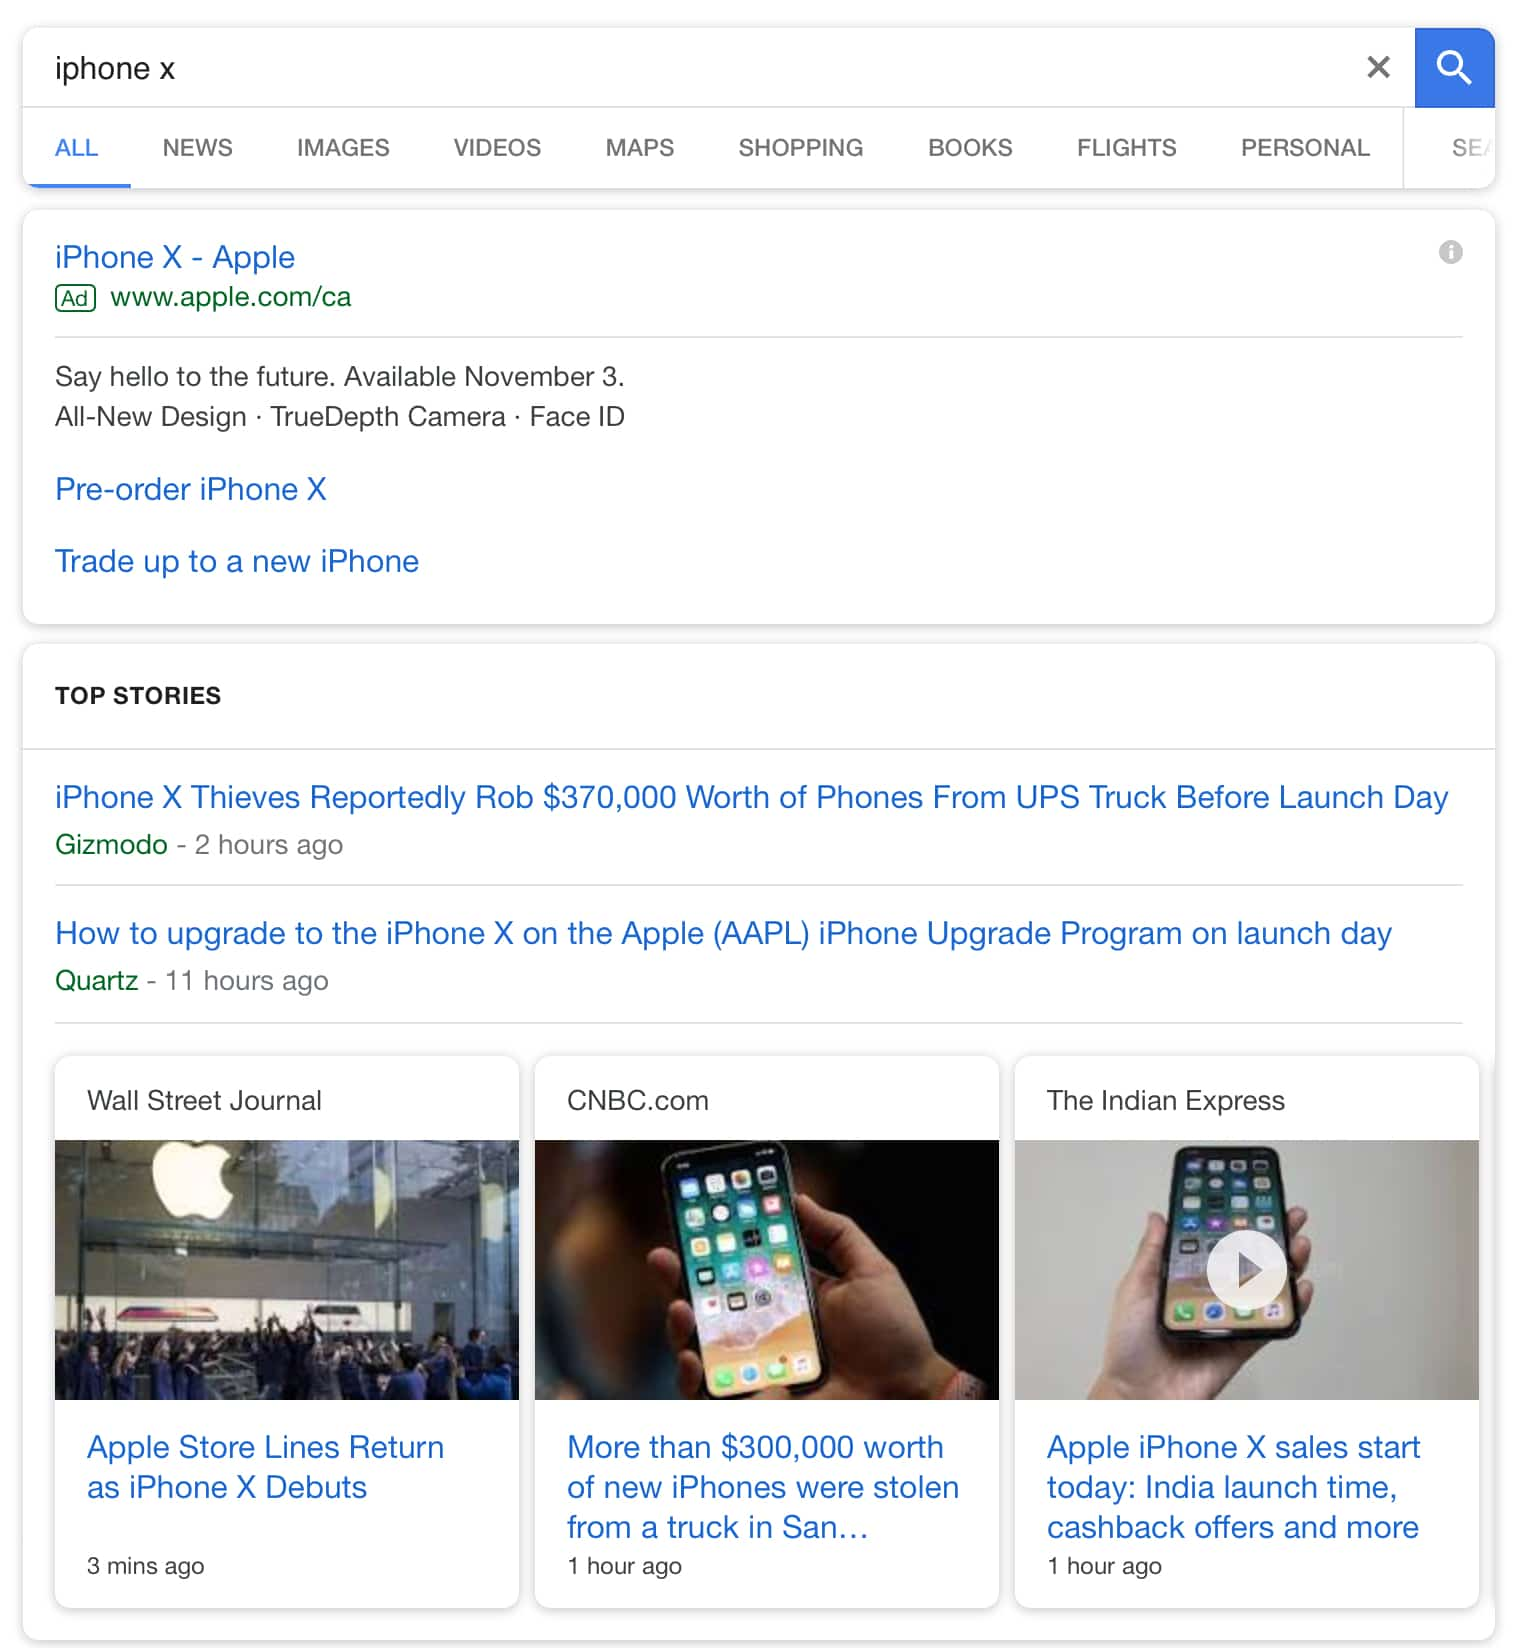 Google Rolls Out a Fresh Look for Mobile Search Results